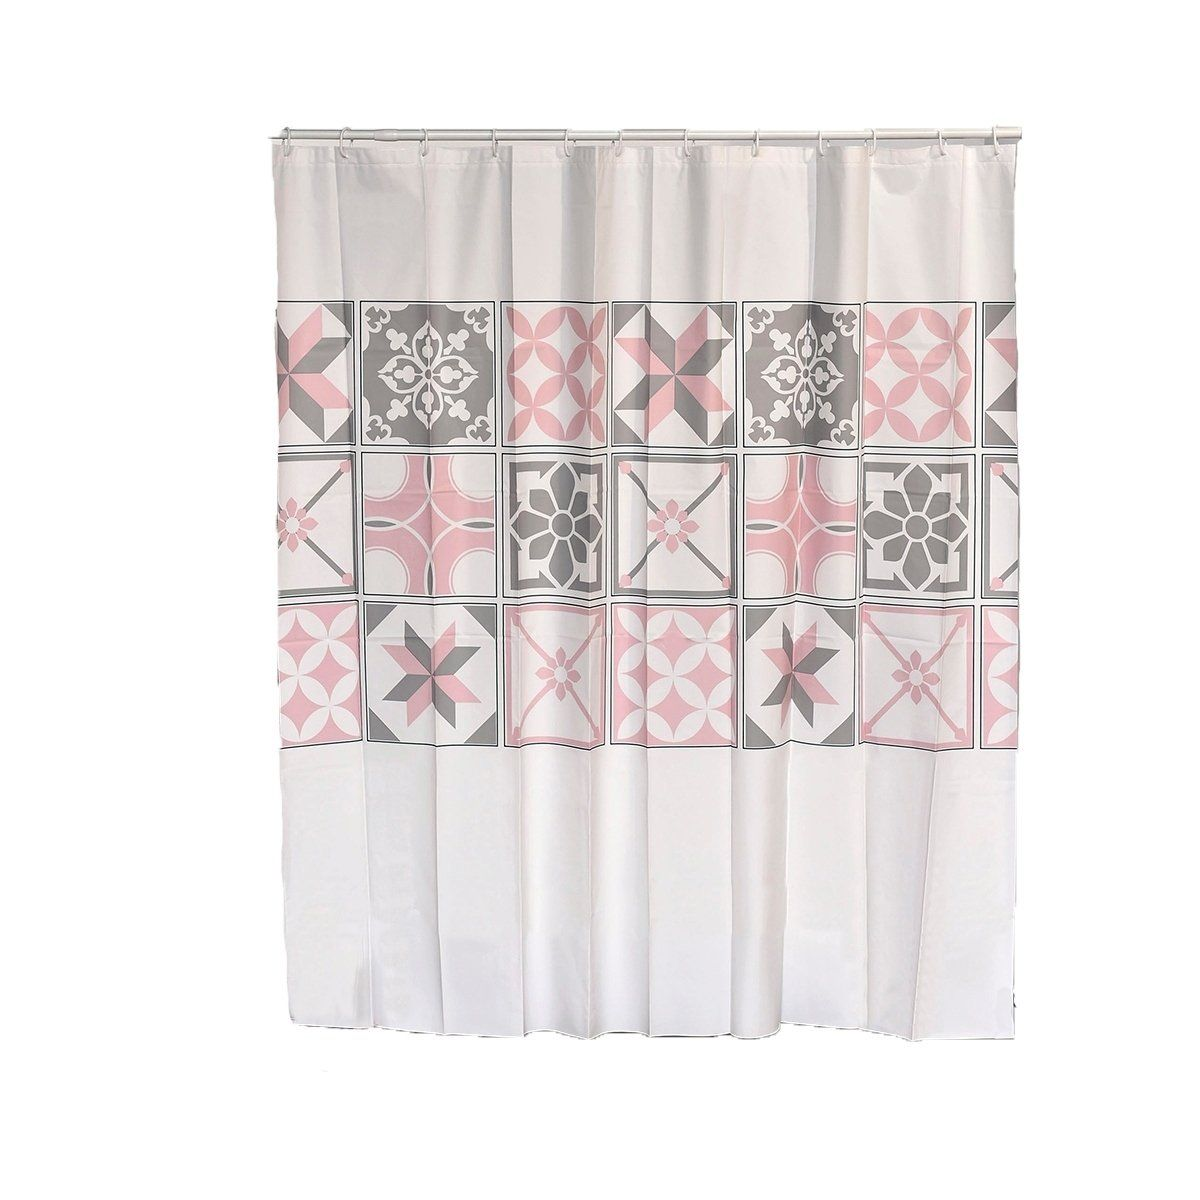 Collection Printed Peva Liner Shower Curtain Pink Evideco